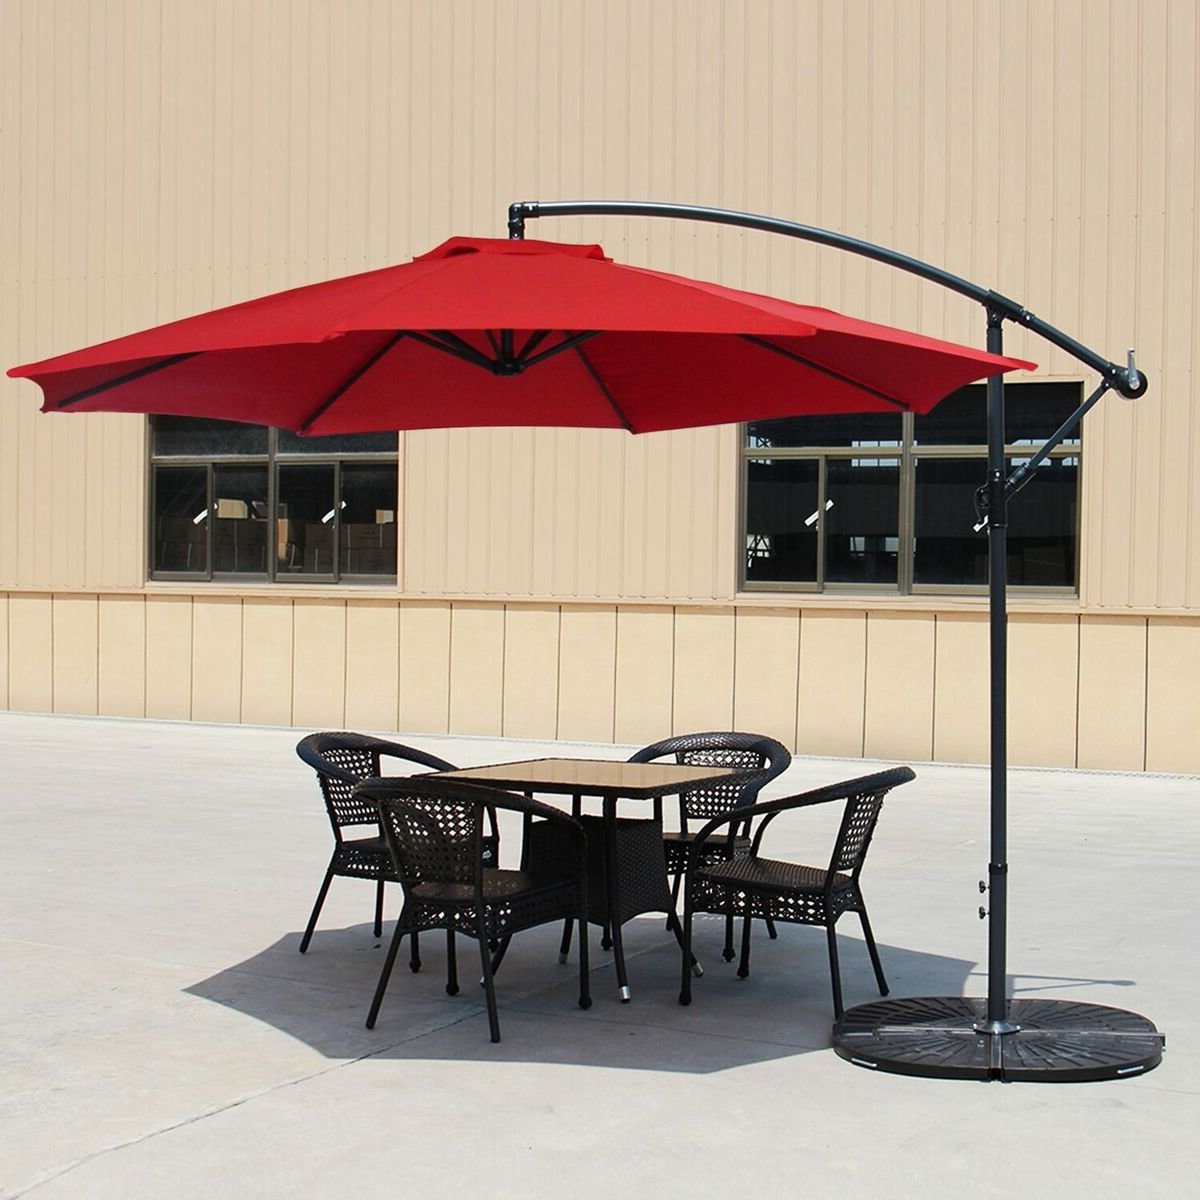 Widely Used Tallulah Sunshade Hanging Outdoor Cantilever Umbrellas Inside Carillon 10' Cantilever Umbrella (View 7 of 20)